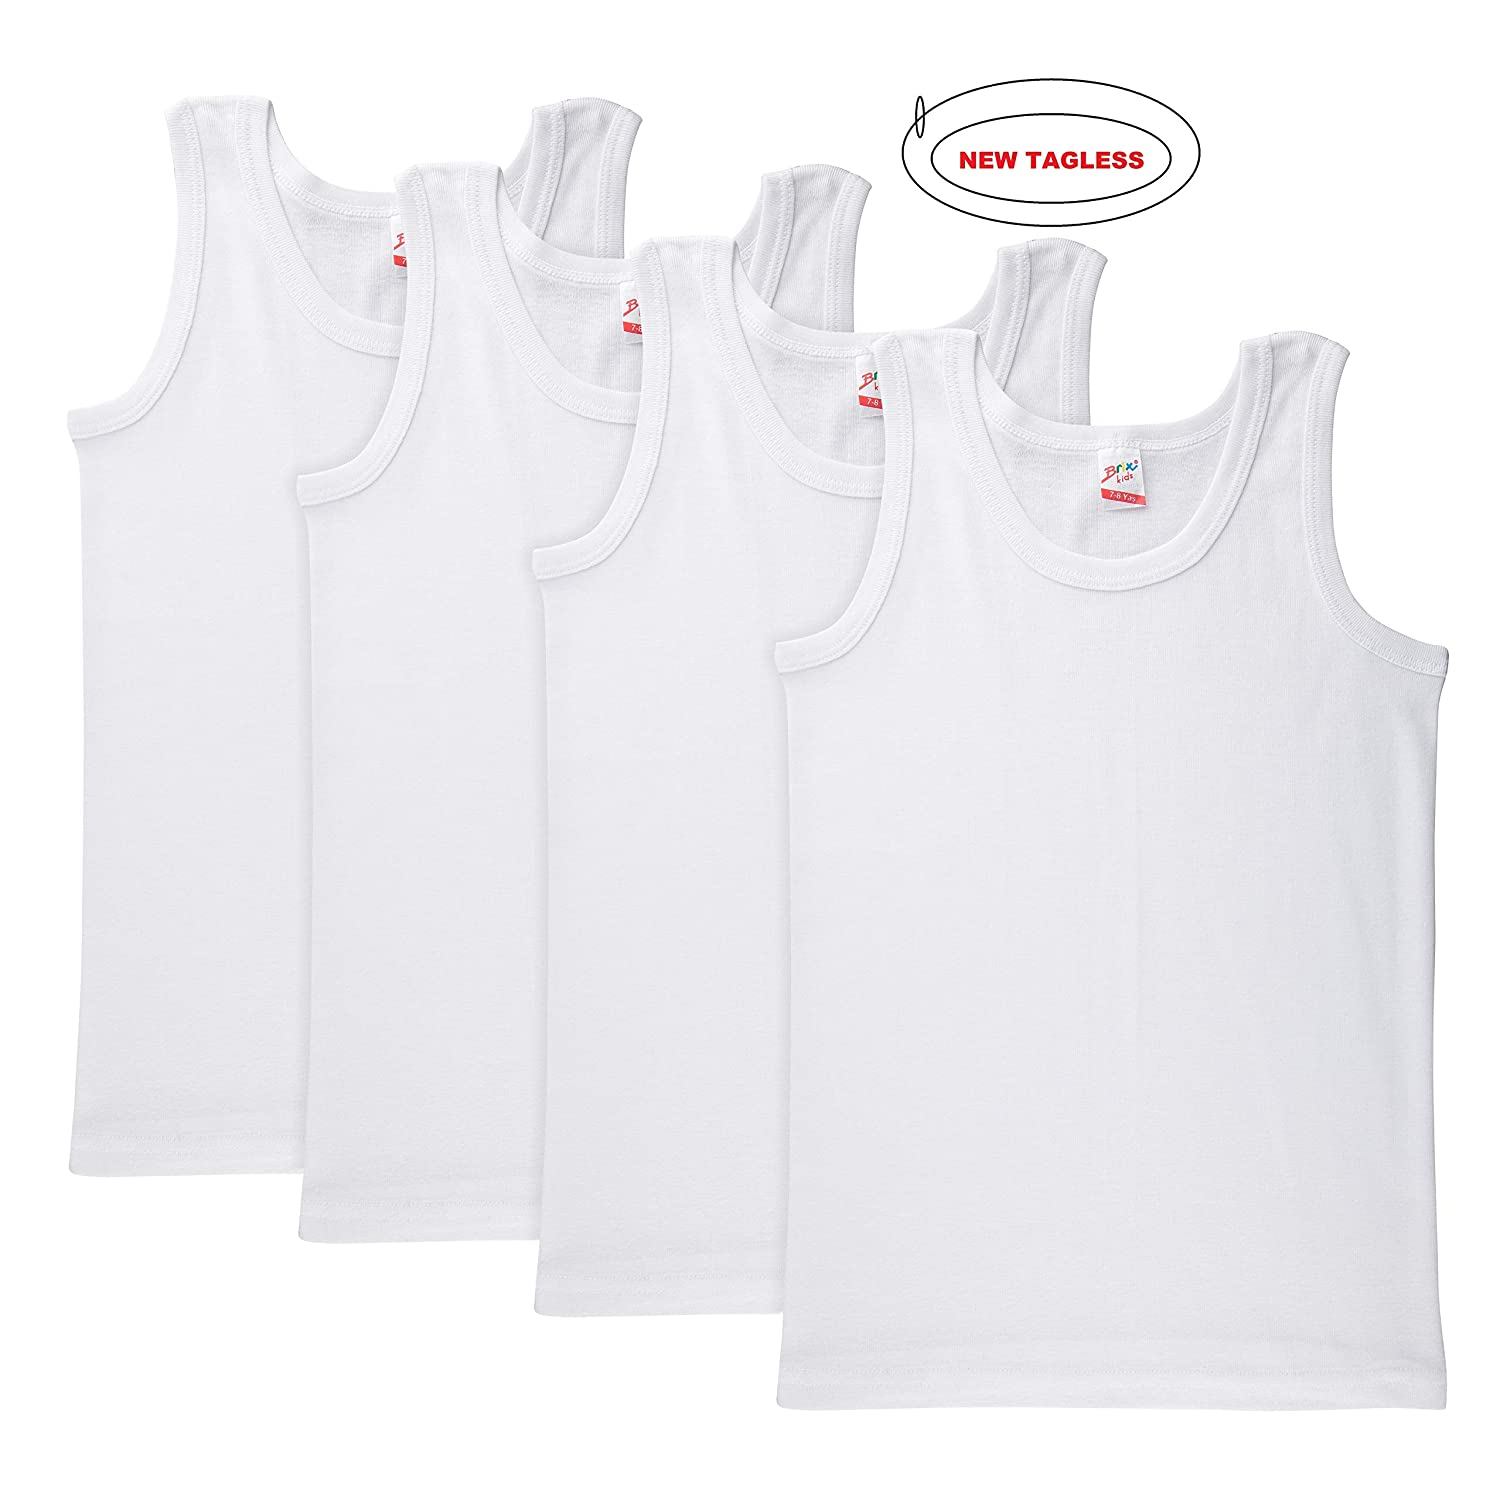 Brix Toddler Boys Girls Tank Top Undershirts White Tagless Super Soft 4 8300 Pack